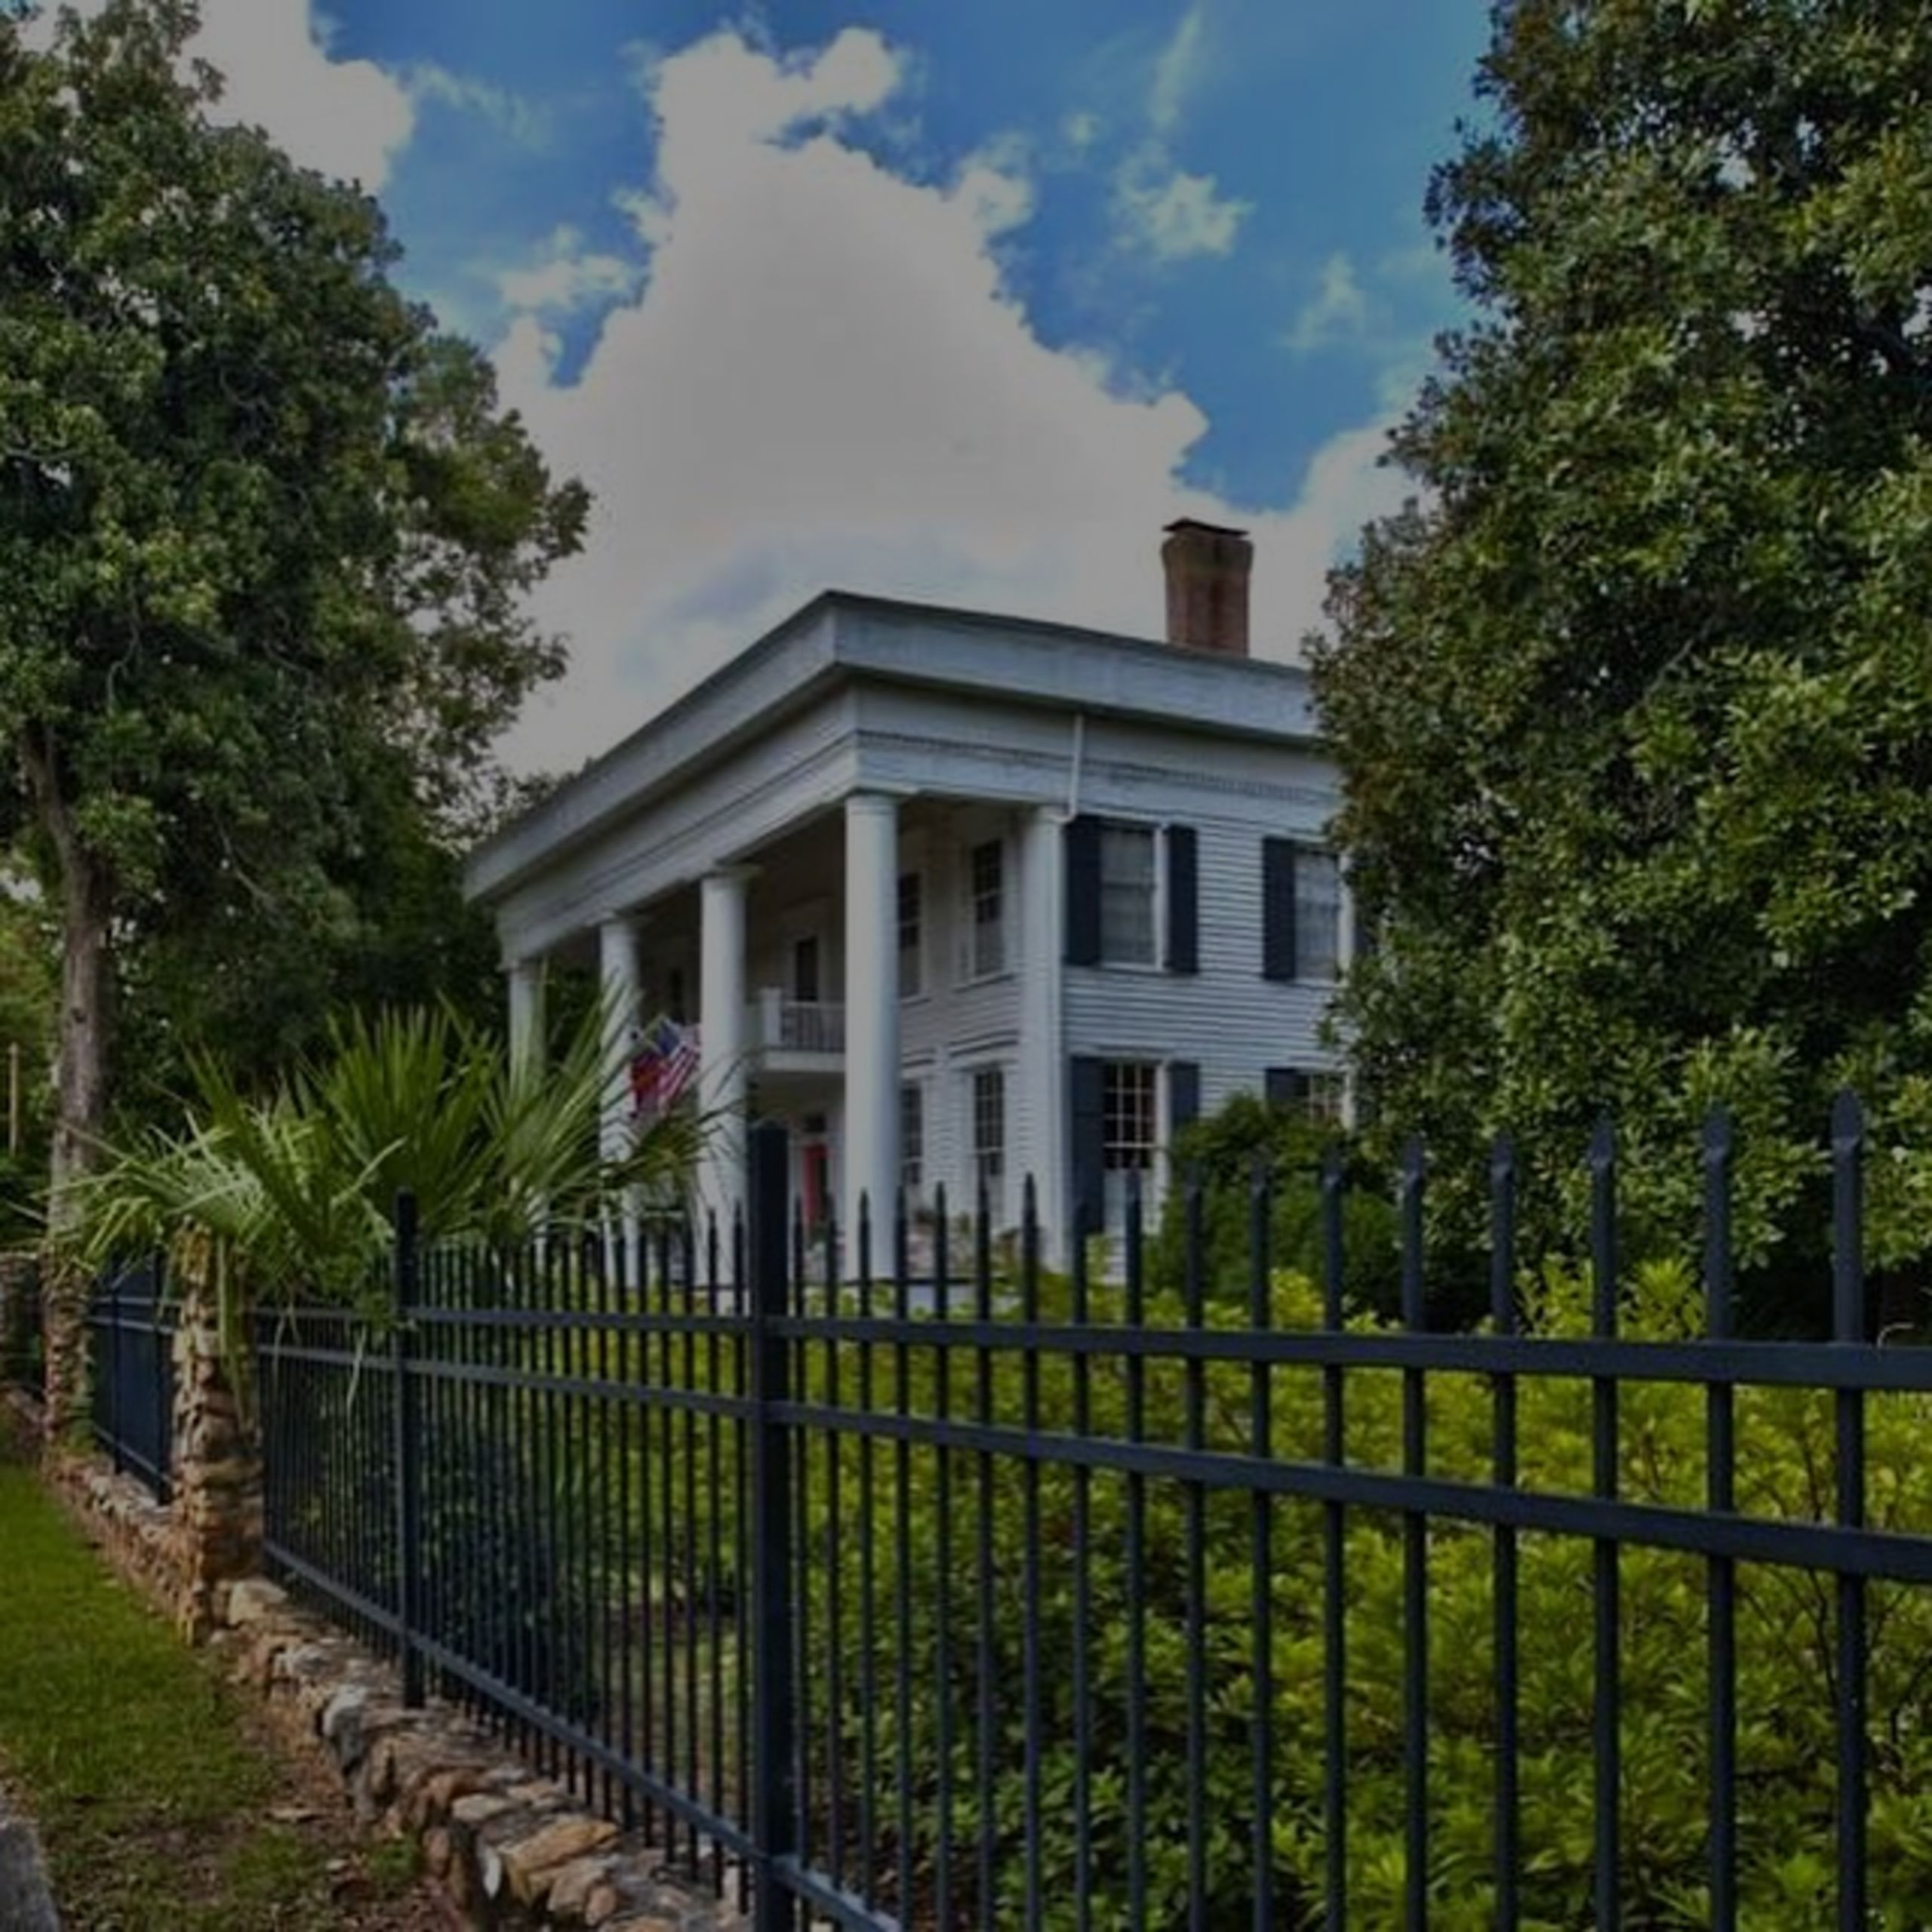 New listings two greek revivals c.1853 and c.1854 in Eatonton GA.and Commercial block on Historic Madison Square.